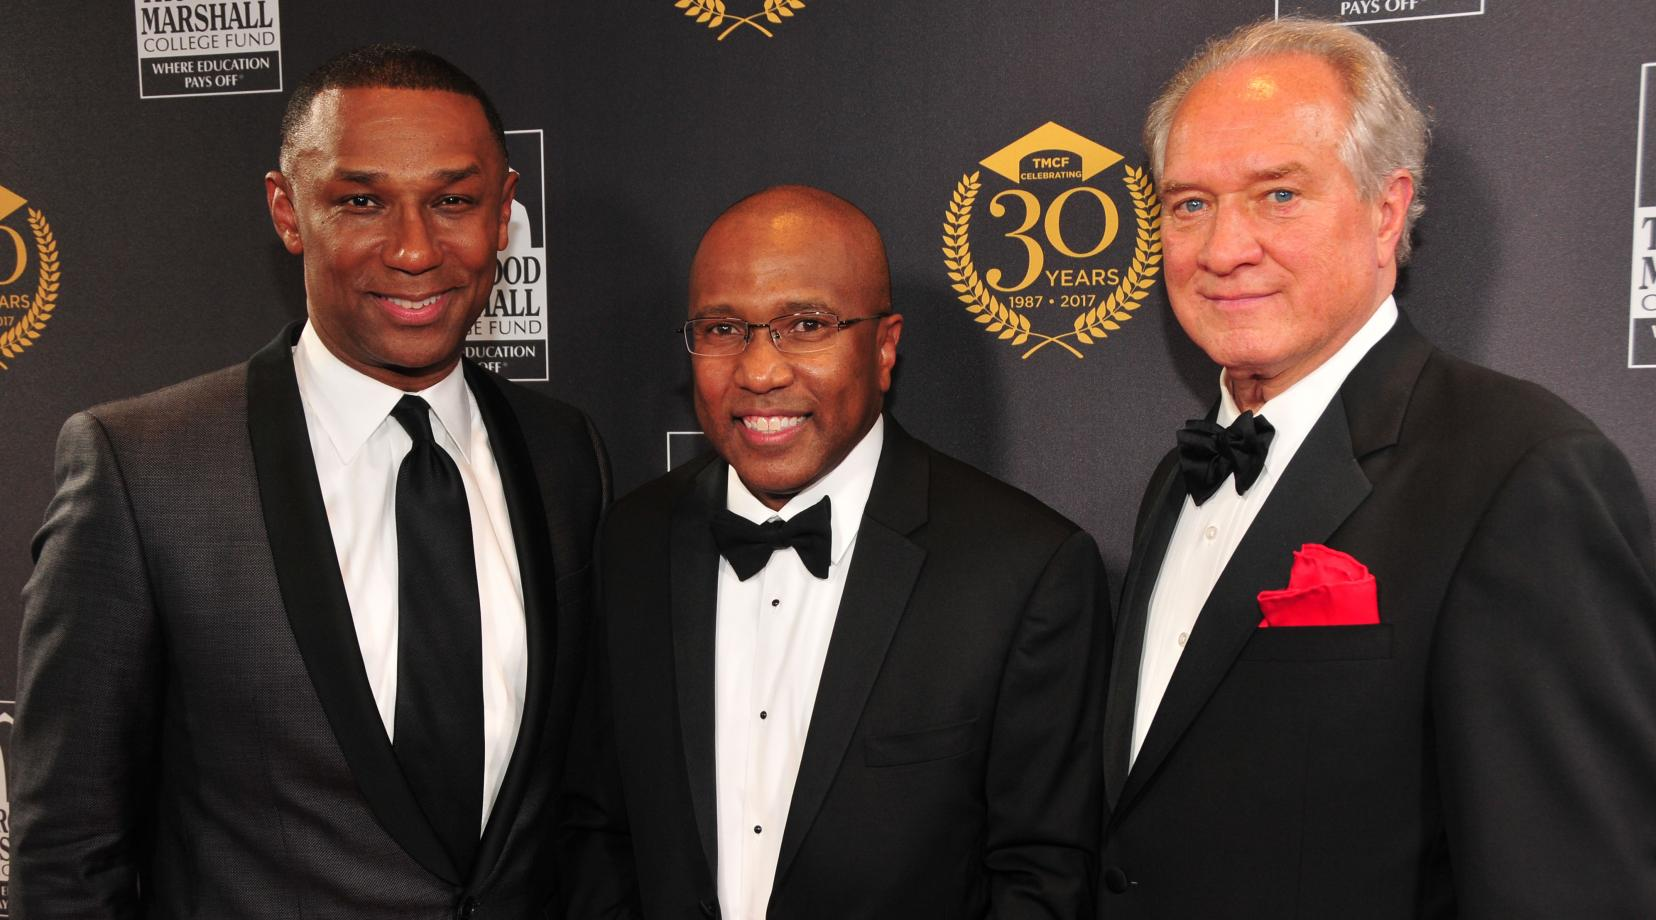 (L-r) Dr. Johnny C. Taylor Jr., outgoing TMCF CEO/president; Dr. Harry L. Williams, outgoing DSU president and newly elected TMCF CEO/president; and Jim Clifton, TMCF Board of Directors chairman and Gallup CEO. The three posed together for a photo during the Oct. 23 Thurgood Marshall Awards Gala, where Dr. Williams' new career chapter was announced.